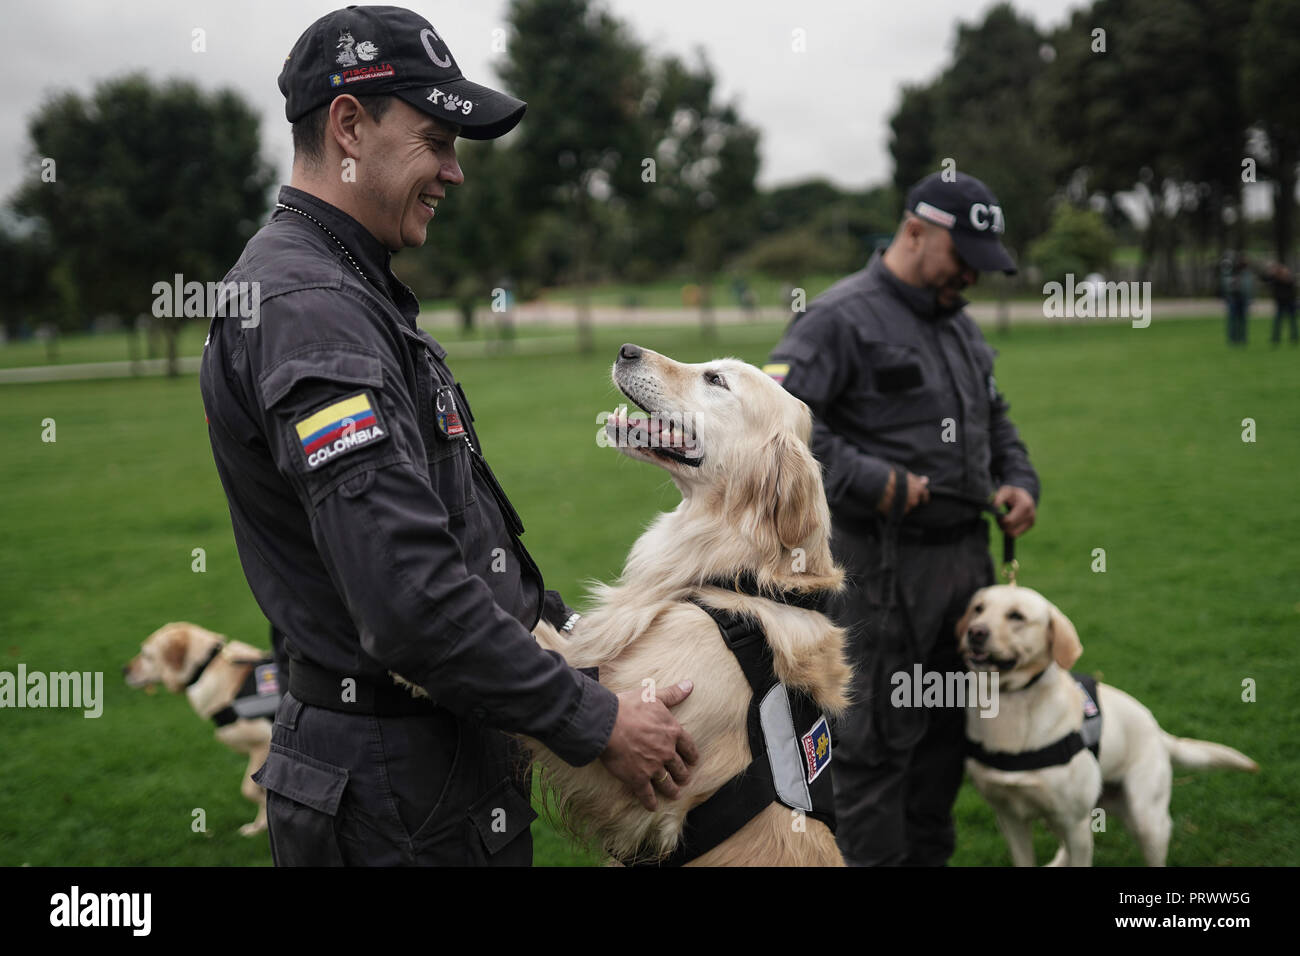 Bogota, Colombia. 4th Oct, 2018. Members of the Colombian Technical Investigation Team (CTI) take part in a recognition ceremony along with their dogs in Bogota, Colombia, on Oct. 4, 2018. A recognition ceremony to highlight and recognize the work of the canines and equines that serve in Bogota was held here to mark the World Animal Day on Thursday. Credit: Jhon Paz/Xinhua/Alamy Live News - Stock Image